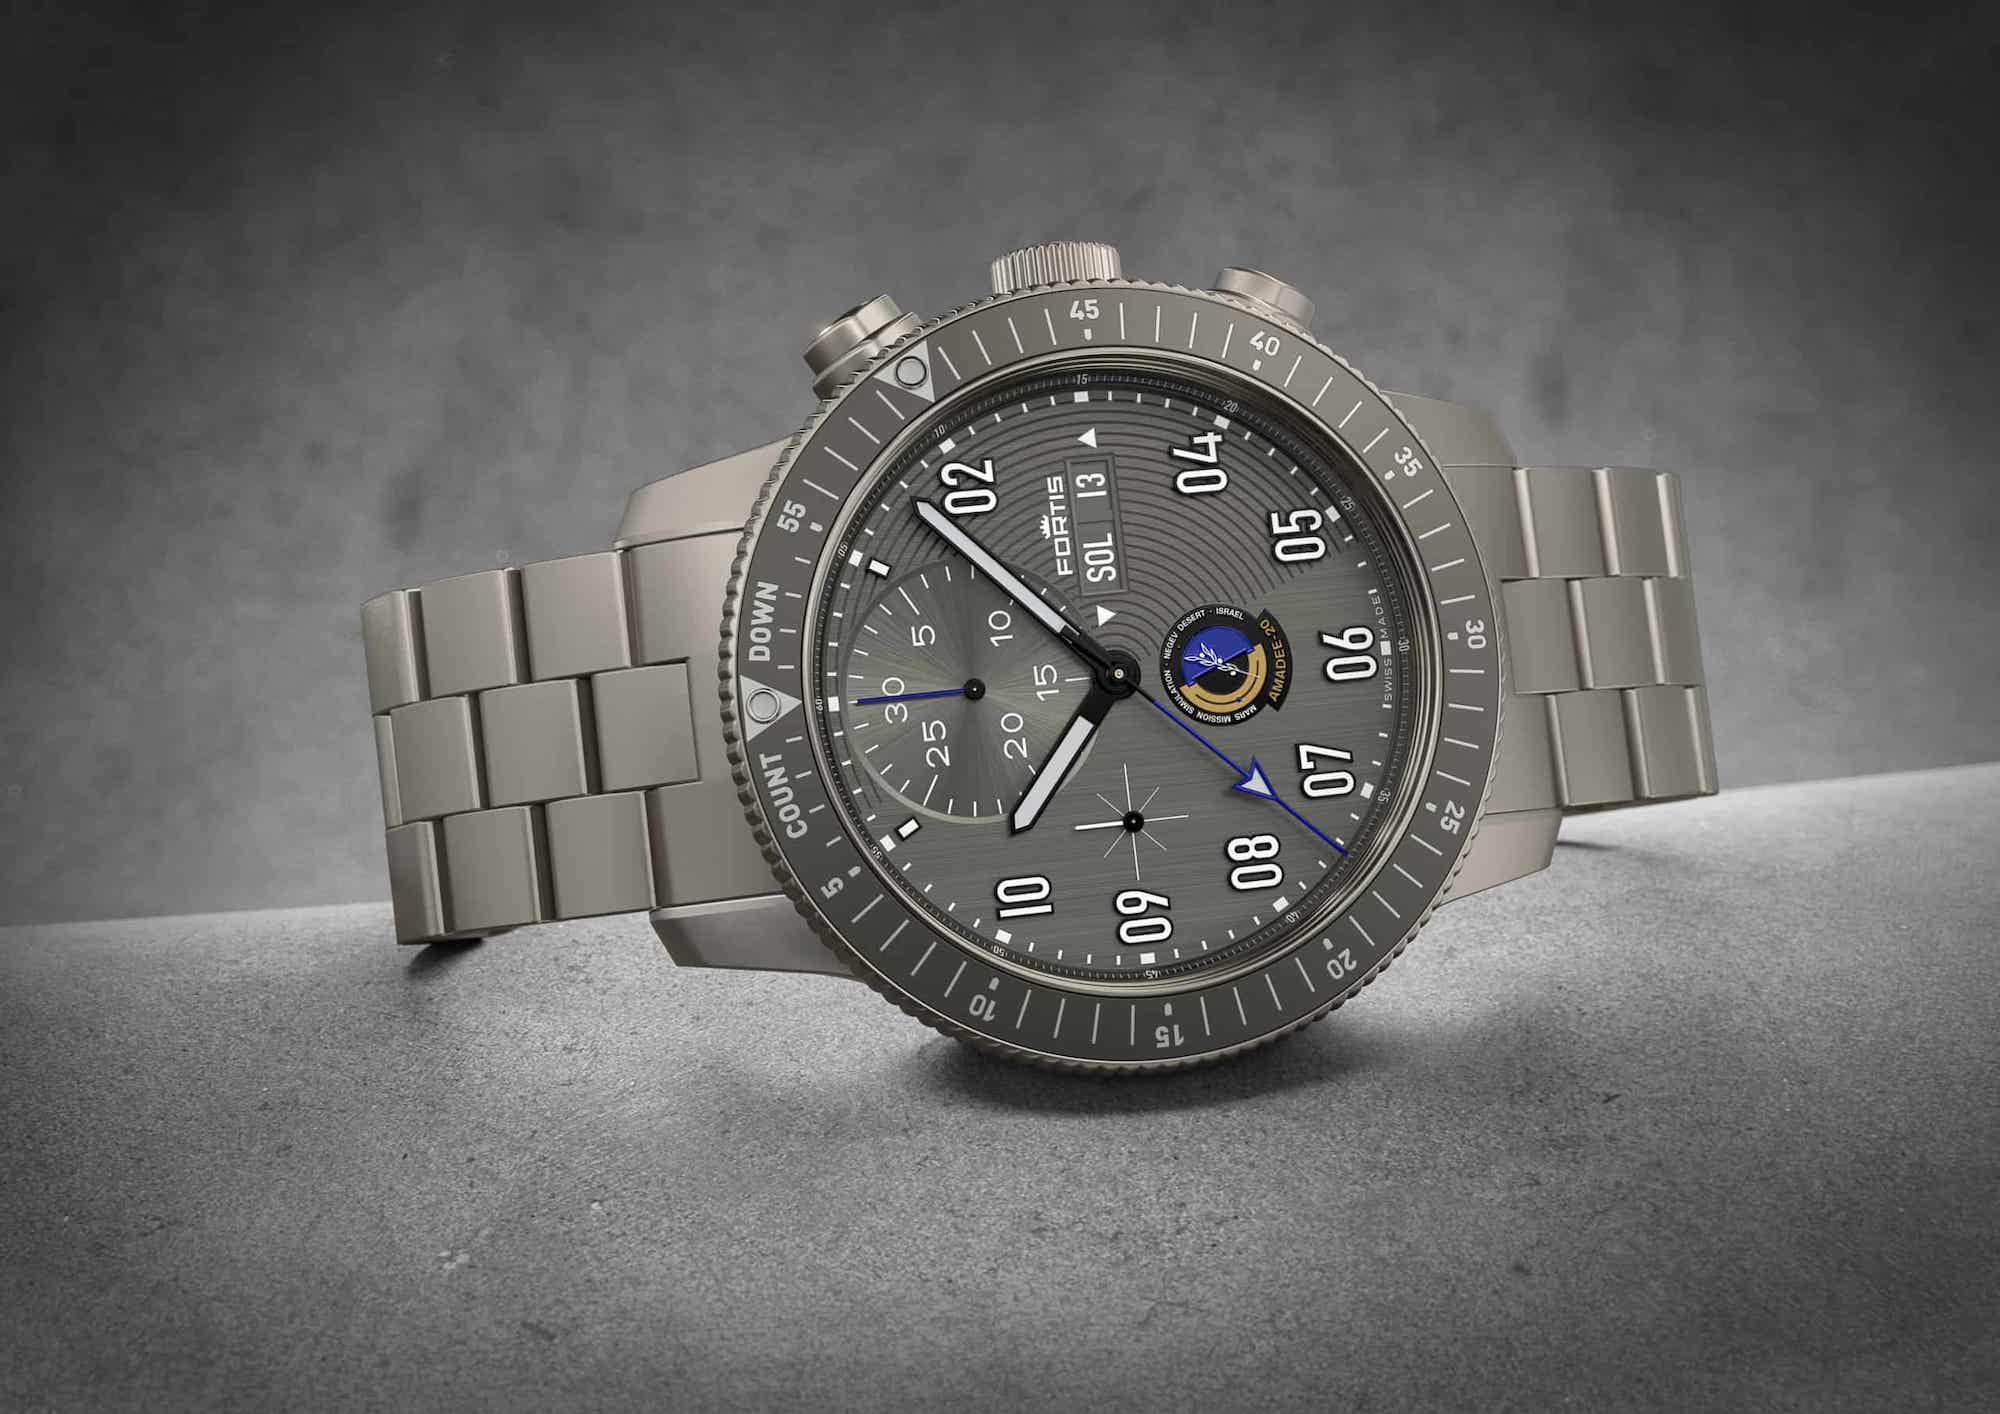 Fortis Official Cosmonauts Chronograph AMADEE-20 Lifestyle 2